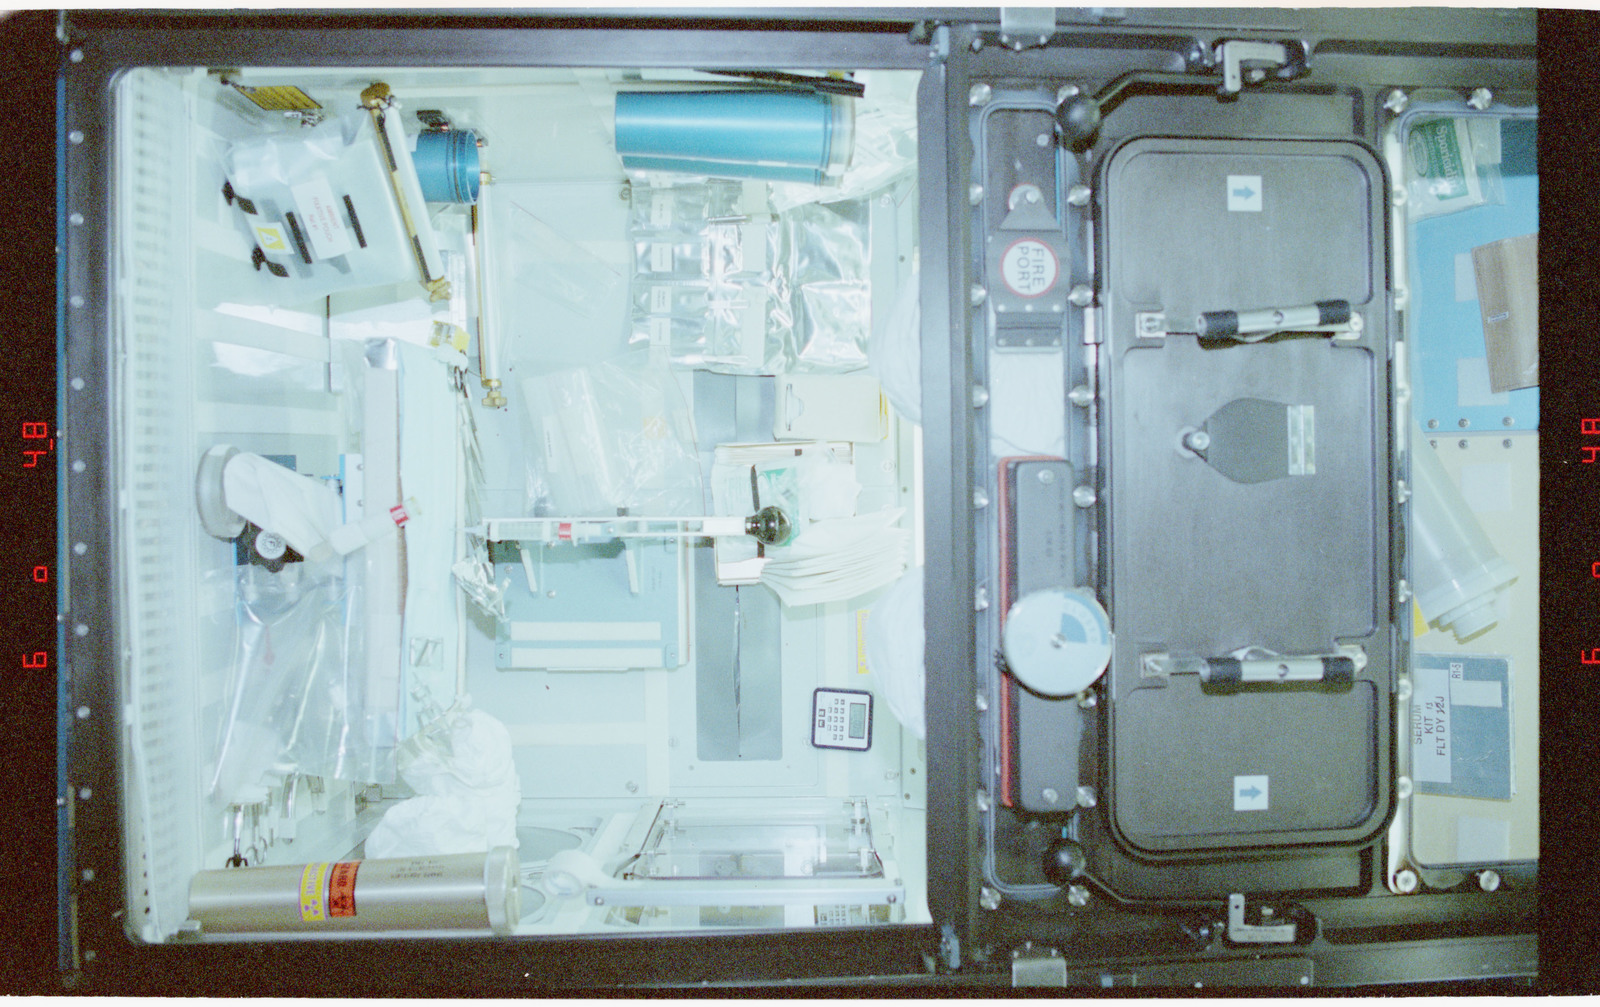 STS058-210-031 - STS-058 - Overhead views of the SPACELAB glovebox showing the animal dispatcher.